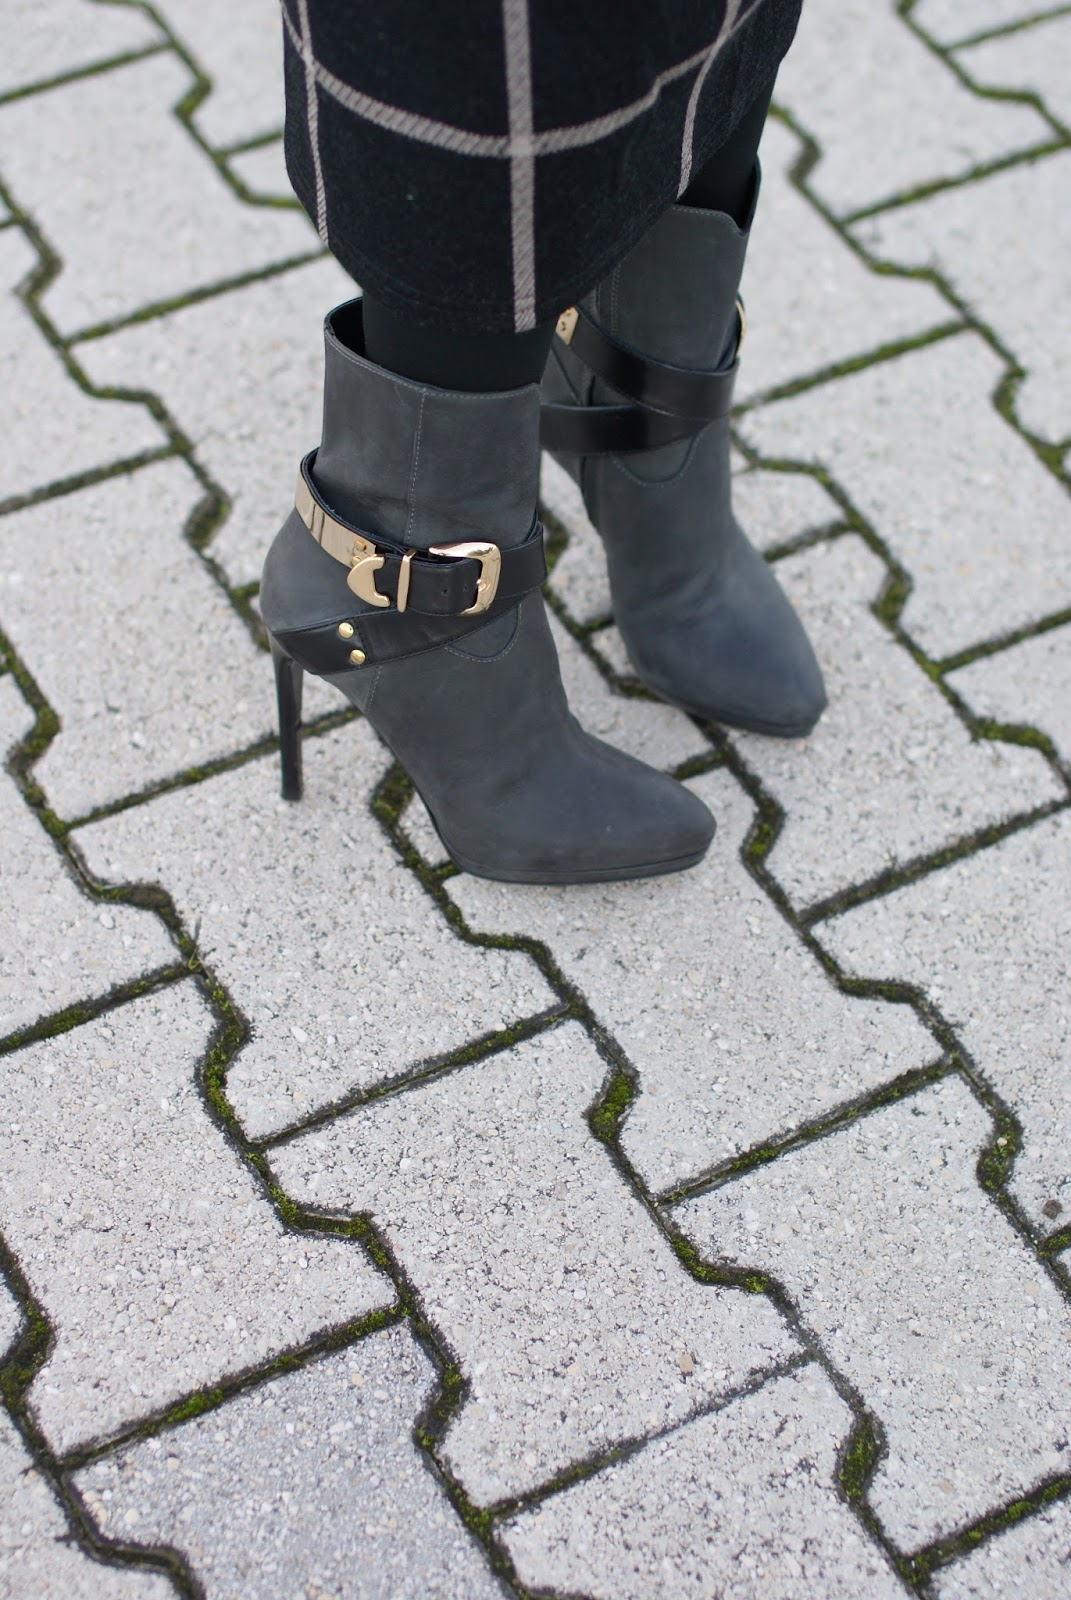 Icone stivaletti, Icone ankle boots with buckle, Fashion and Cookies, fashion blogger